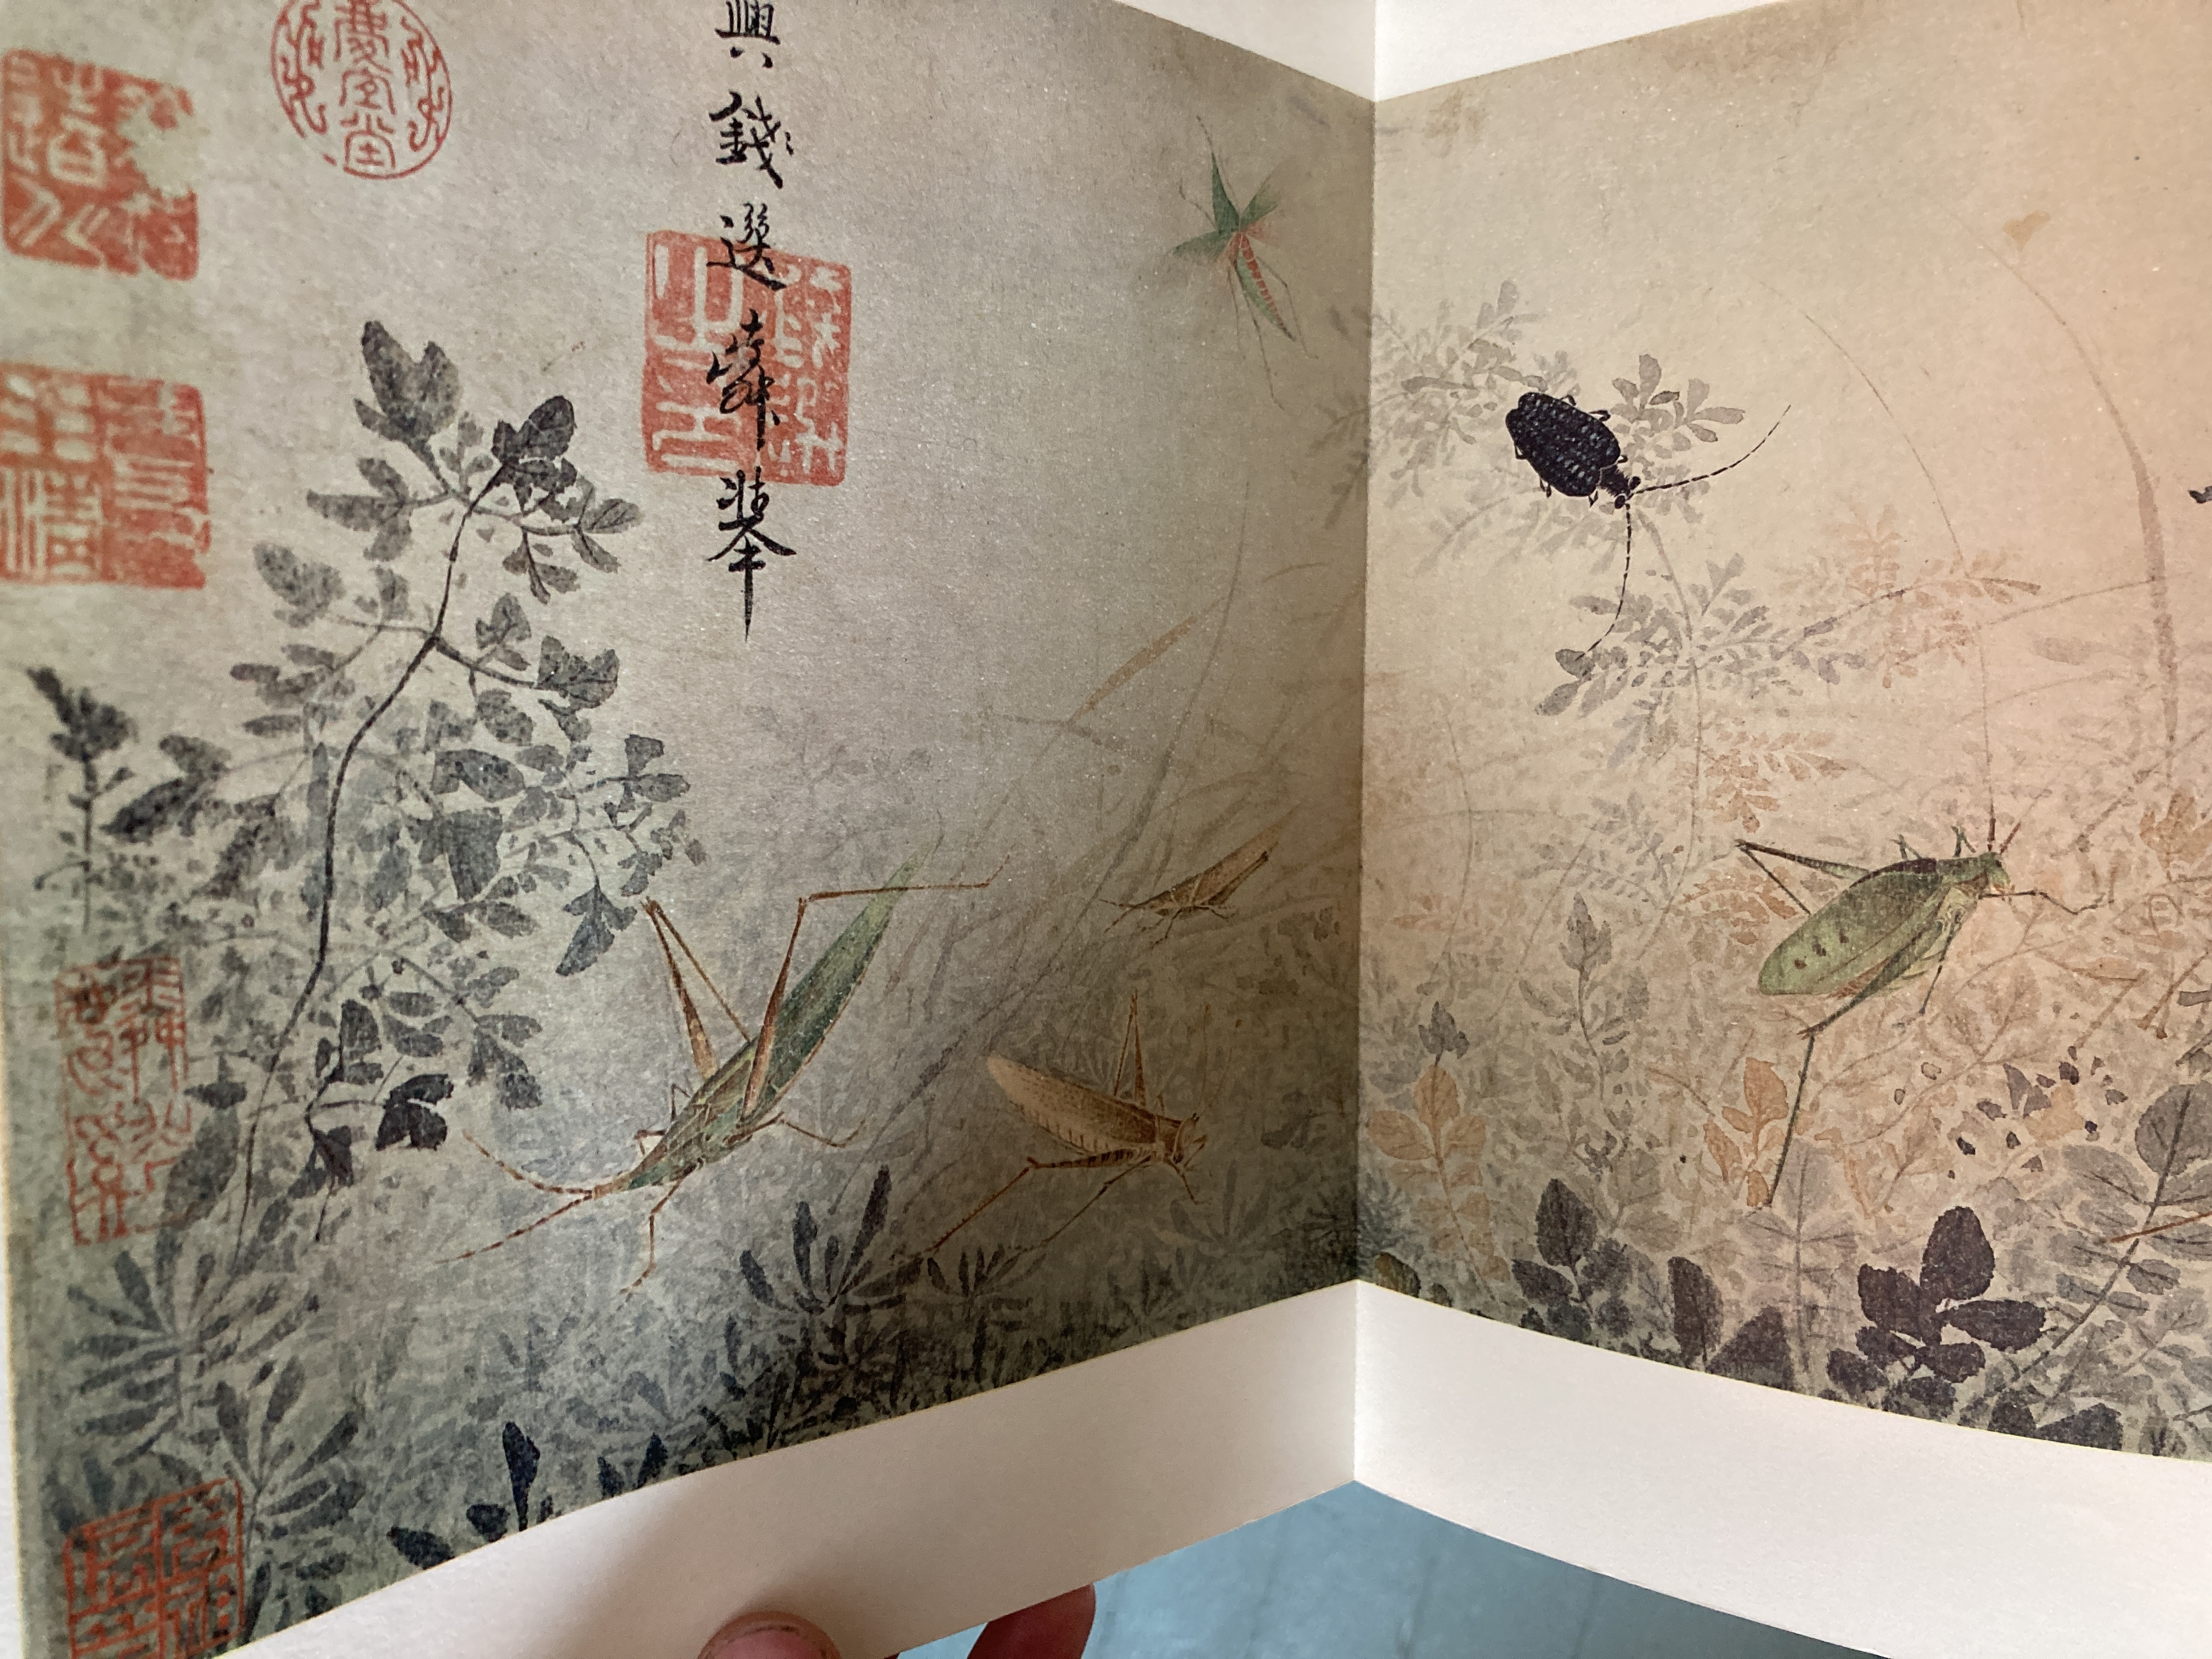 Sze, The Tao of Painting